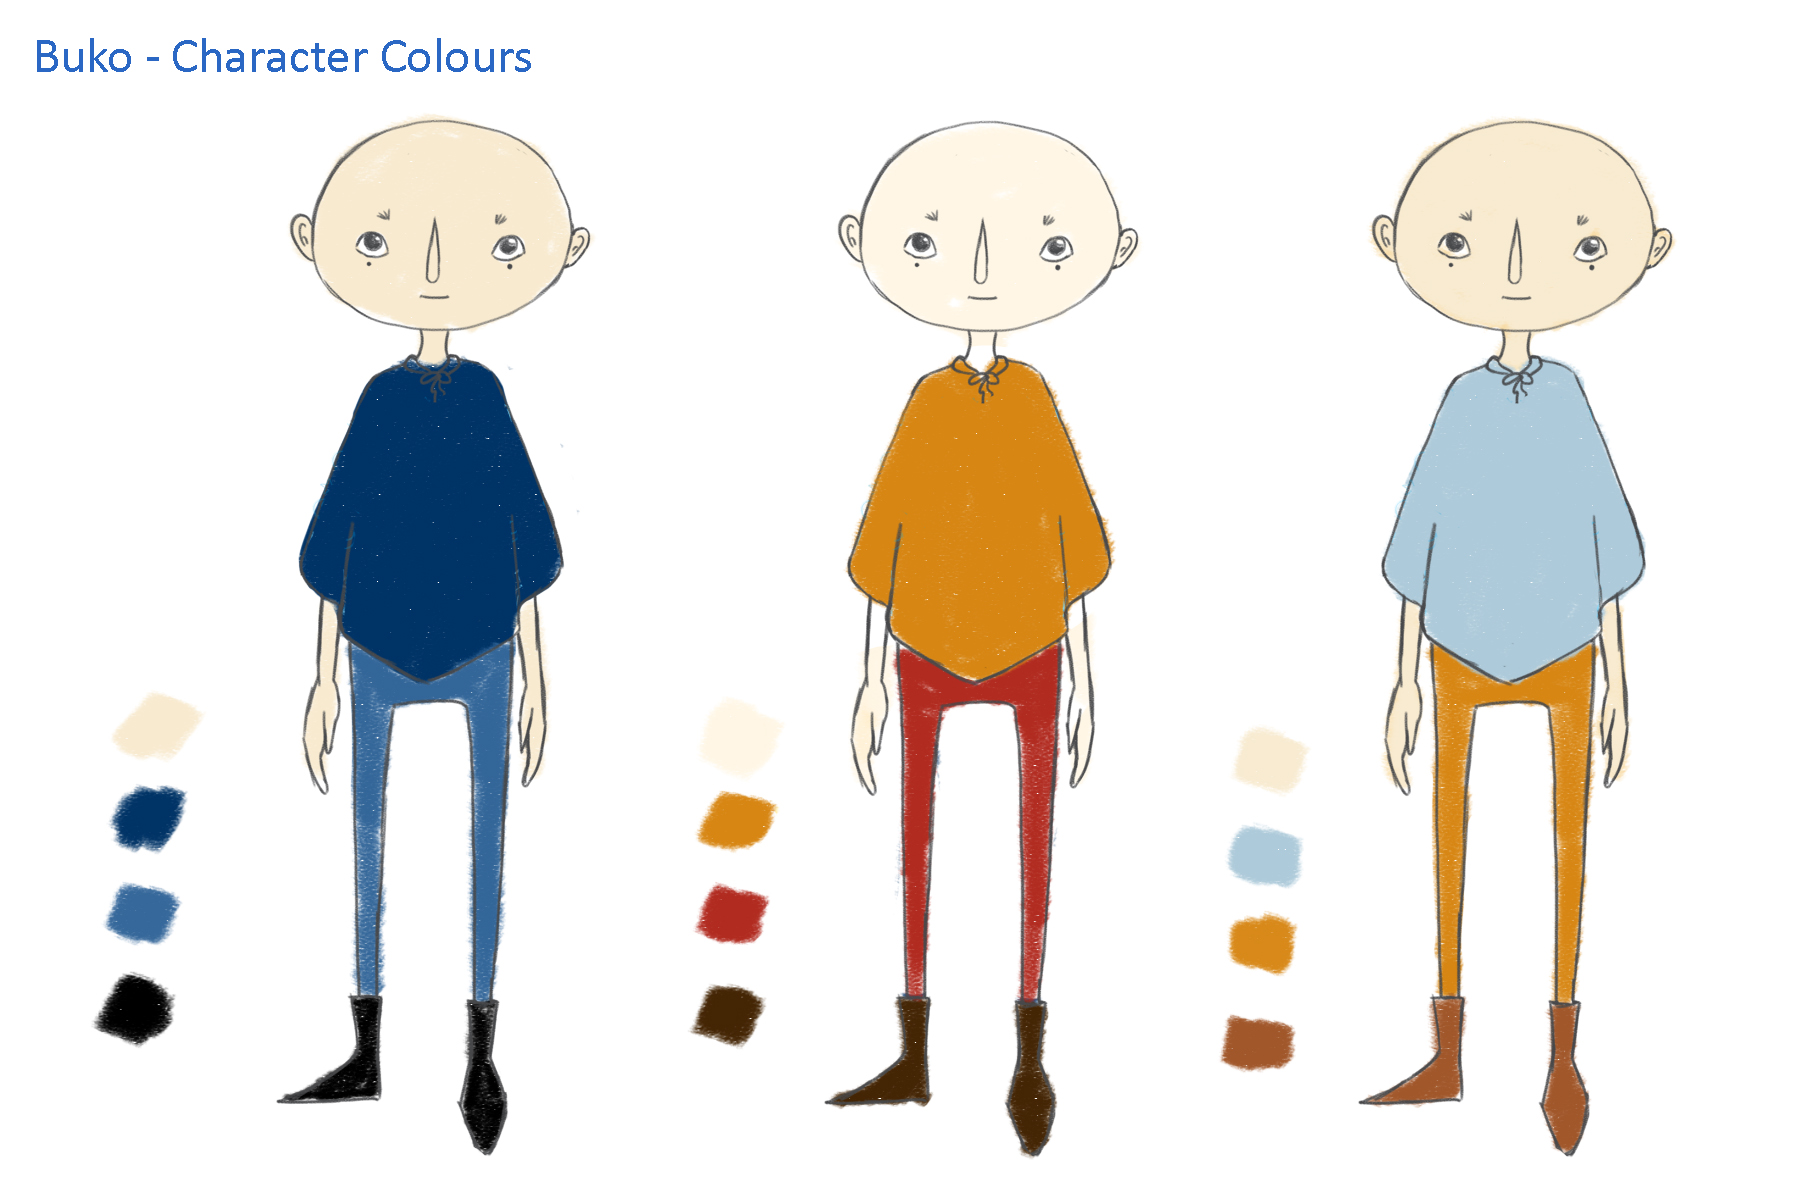 Buko_Character_Colour.jpg